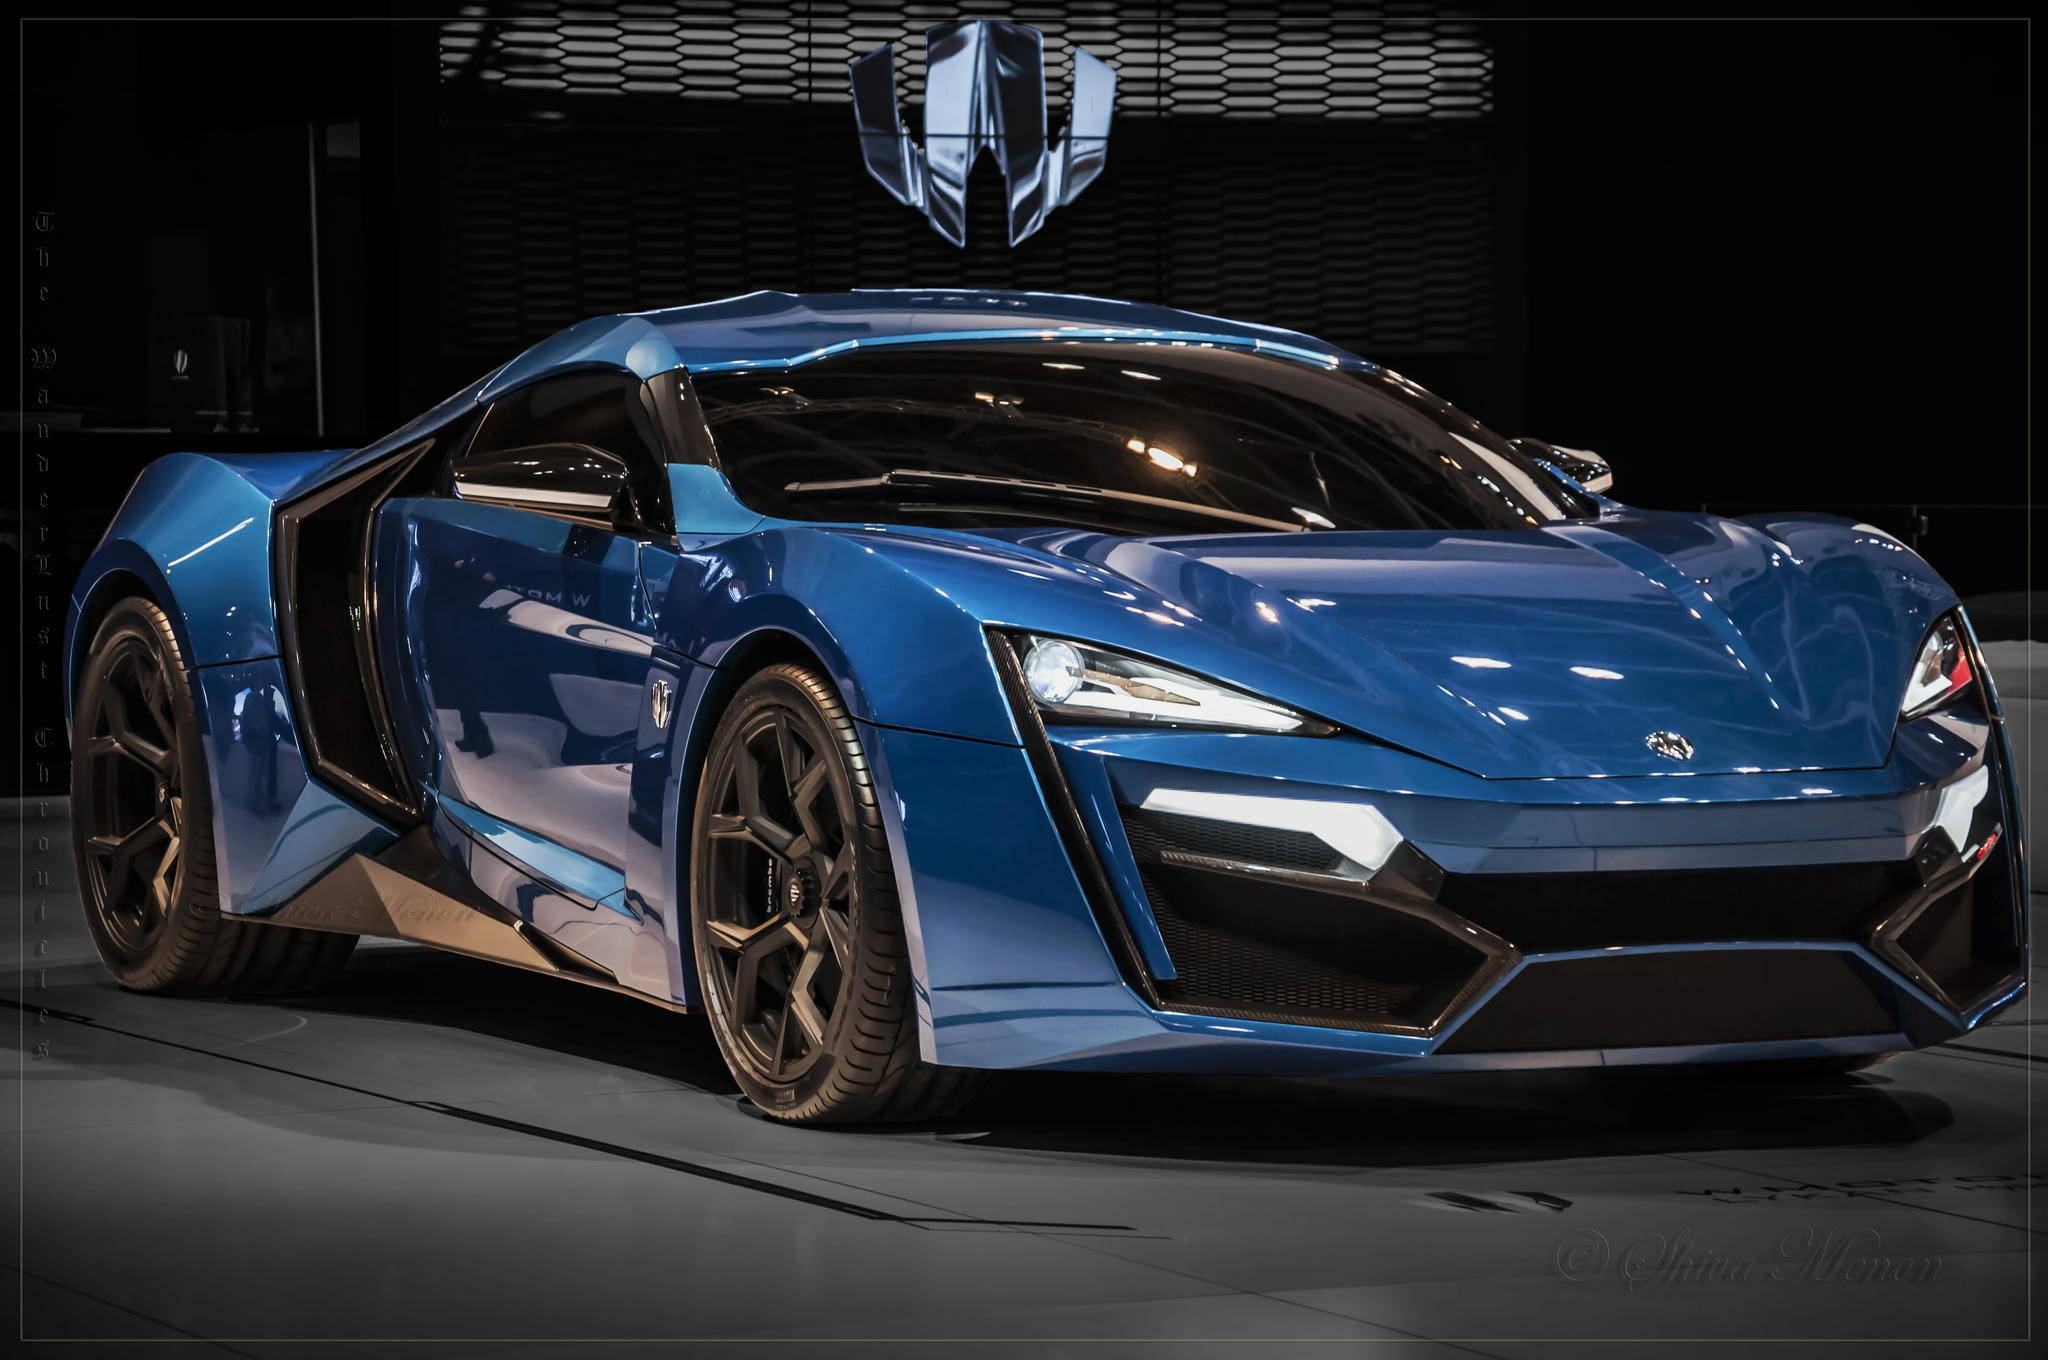 Lykan Hypersport Wallpapers 66 images